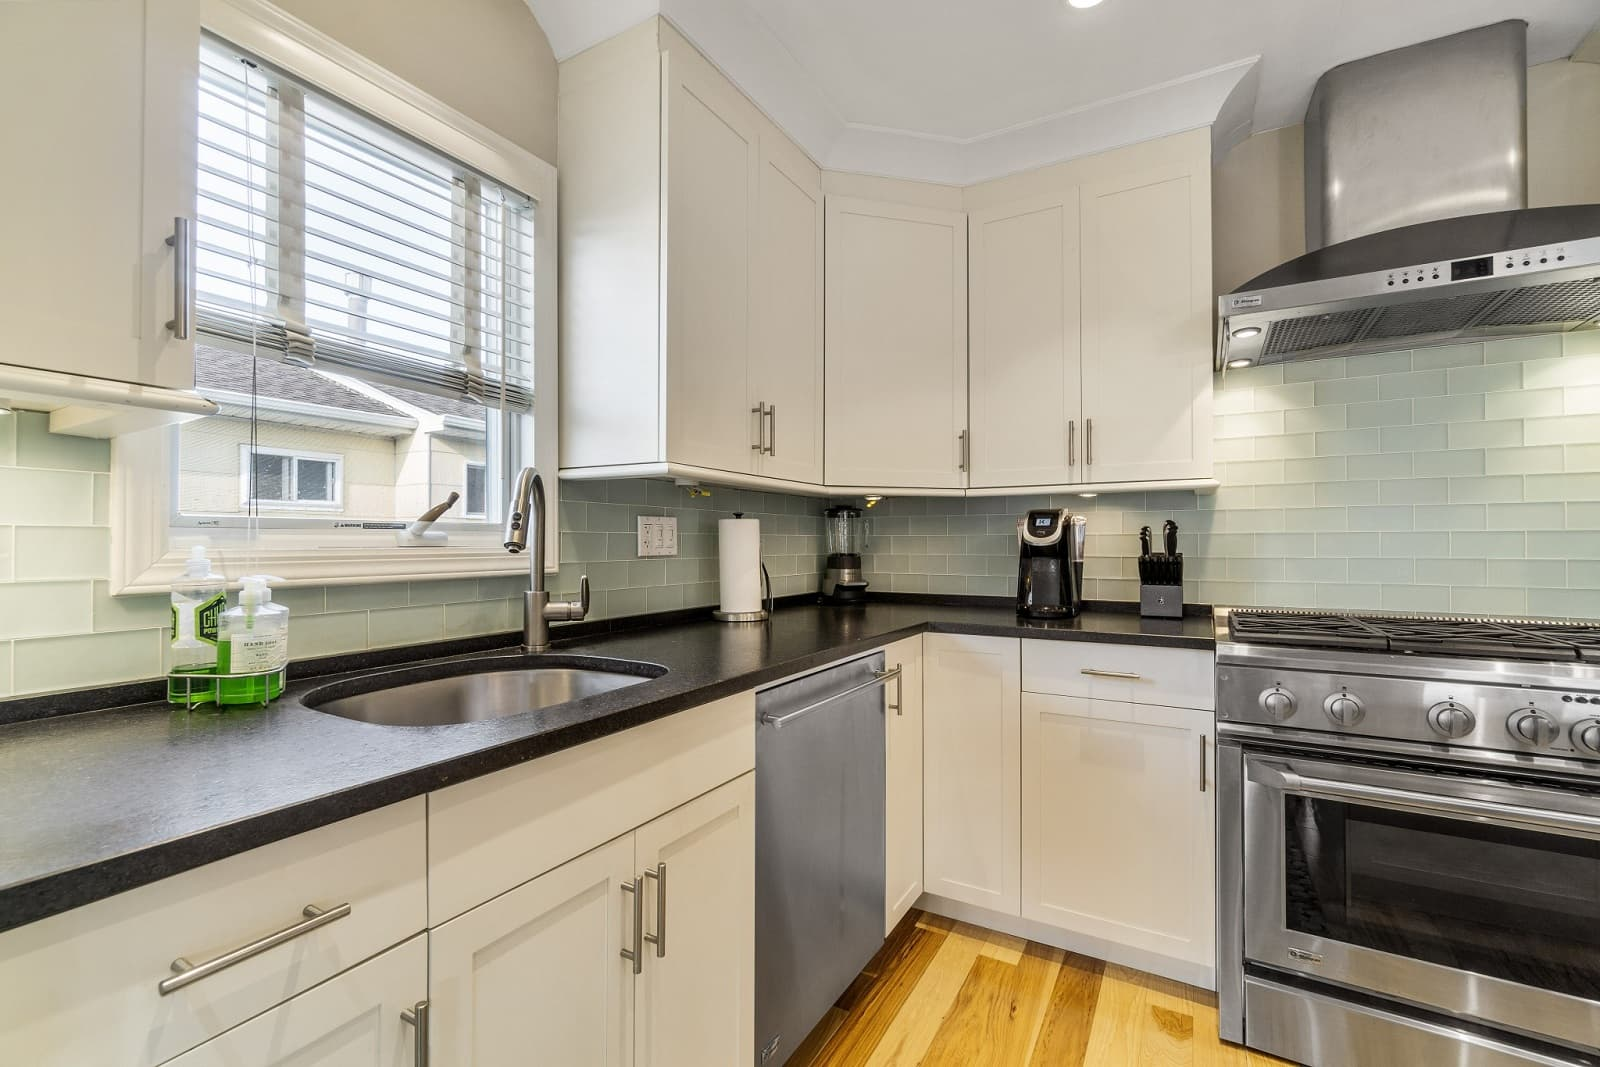 Real Estate Photography in Long Beach - NY - USA - Kitchen View